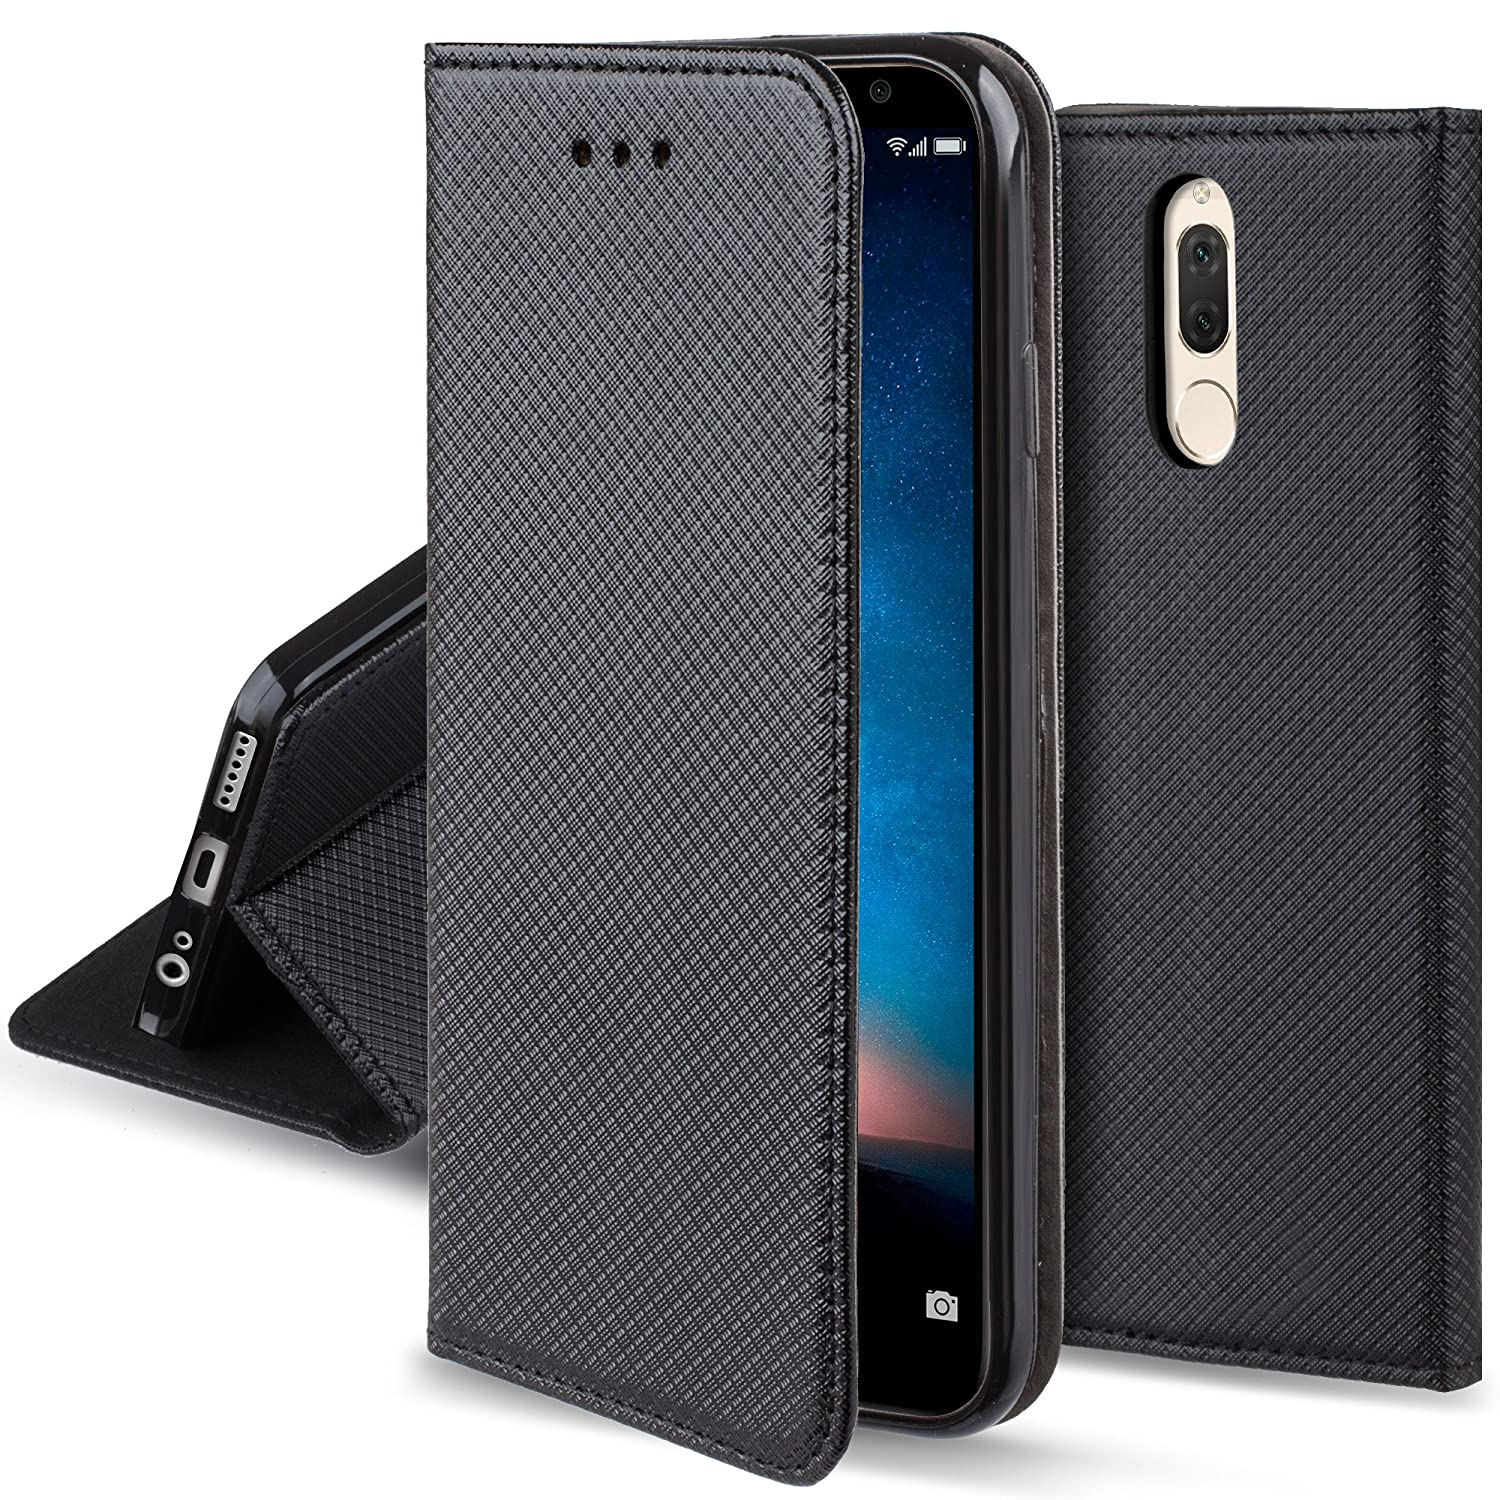 official photos 26e0c adced Moozy case Flip cover for Huawei Mate 10 Lite, Black - Smart Magnetic Flip  case with folding stand